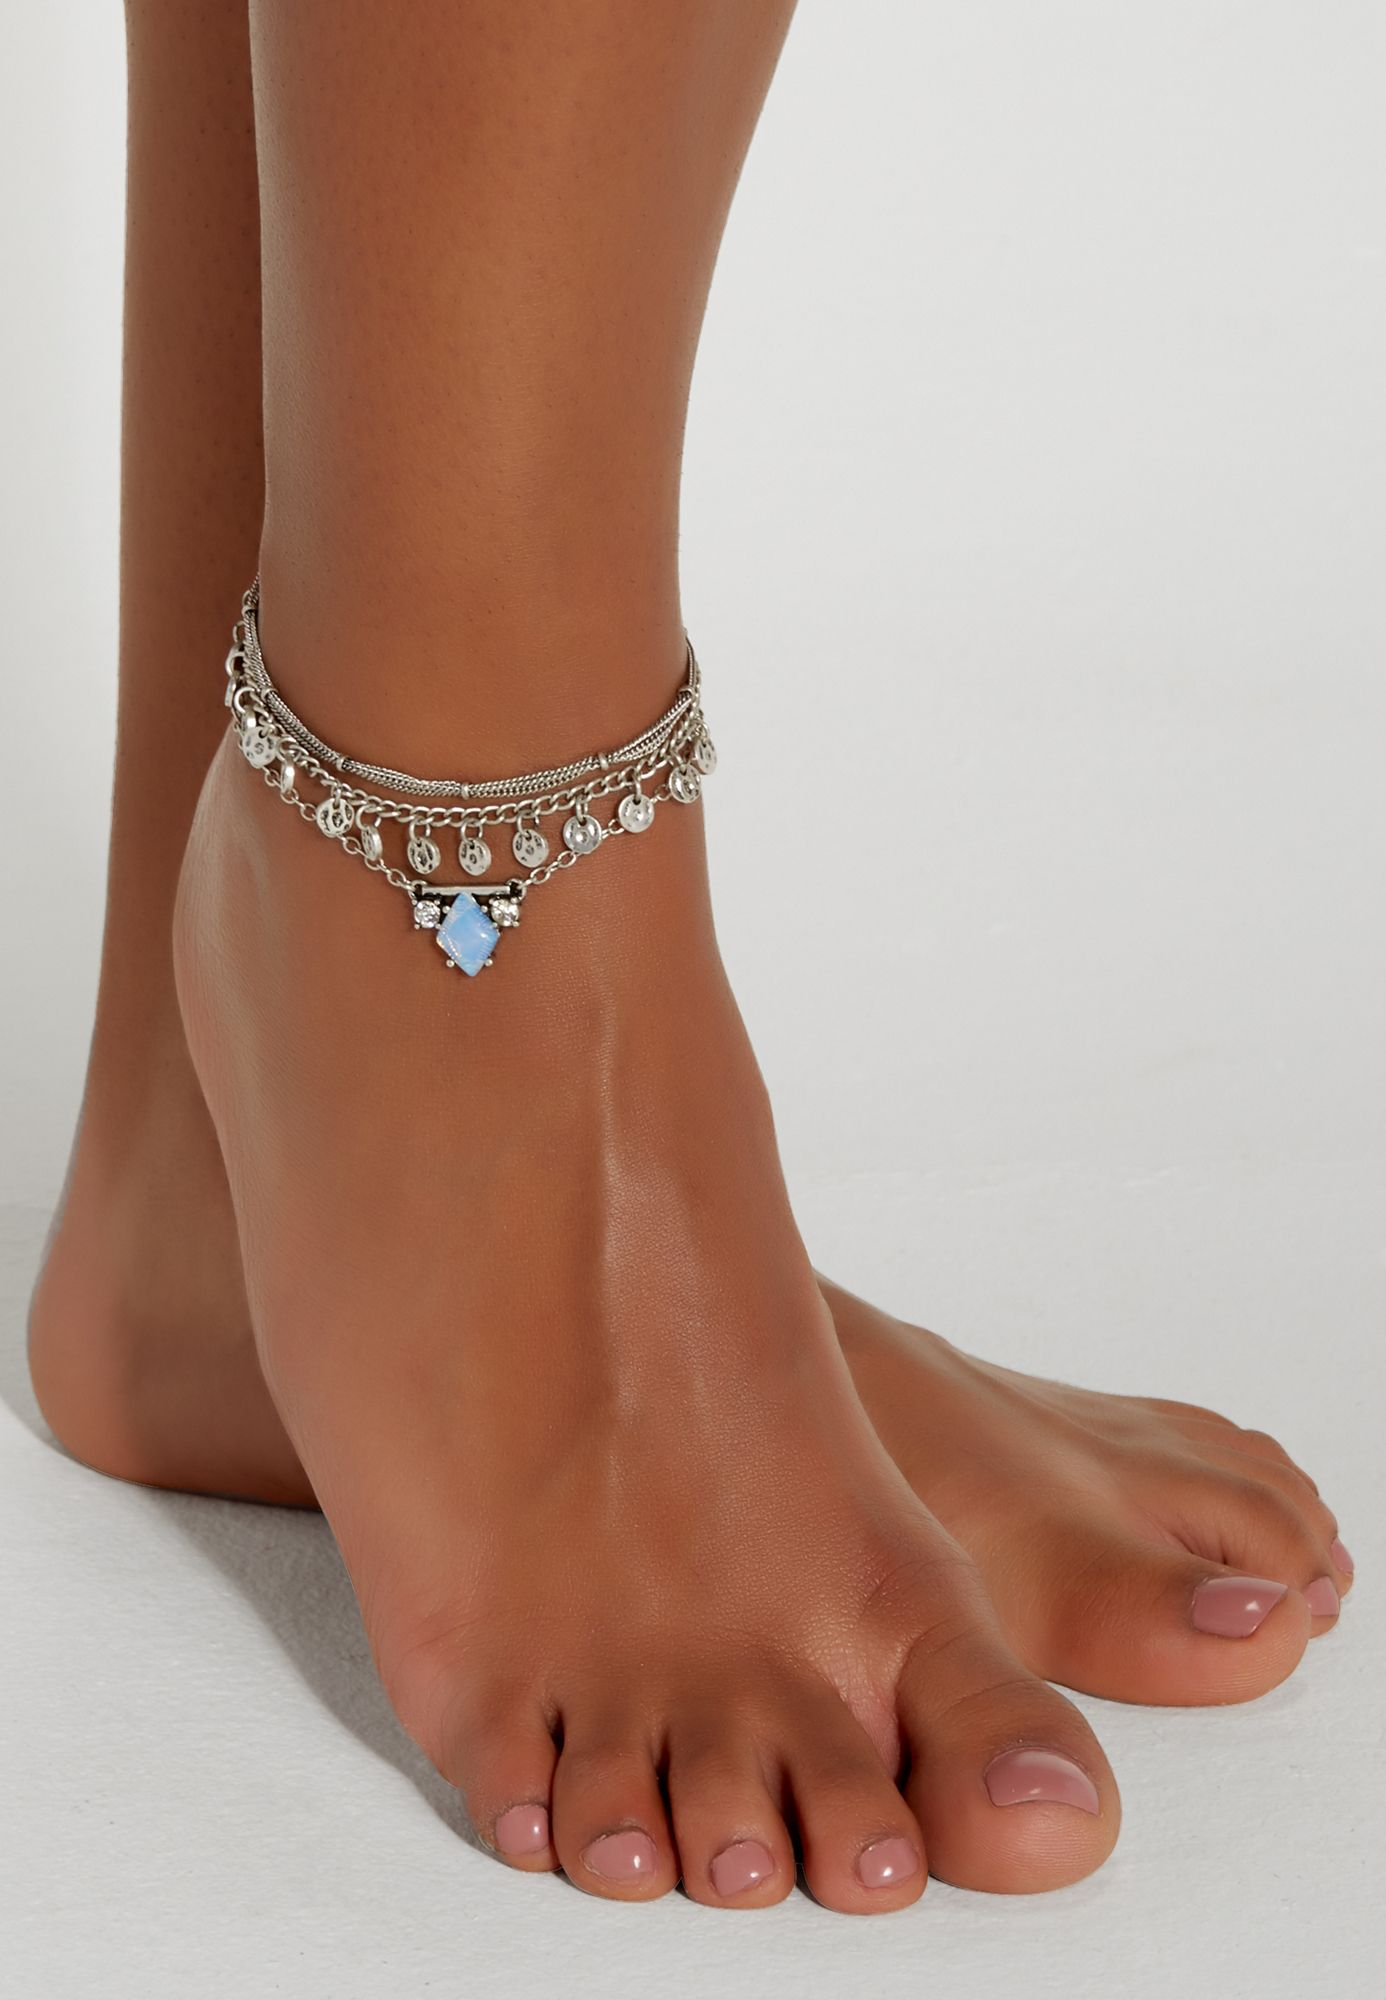 ankle store florida evil eye bracelets bracelet and can sandal ring buy anklet flops where toe info i barefoot product